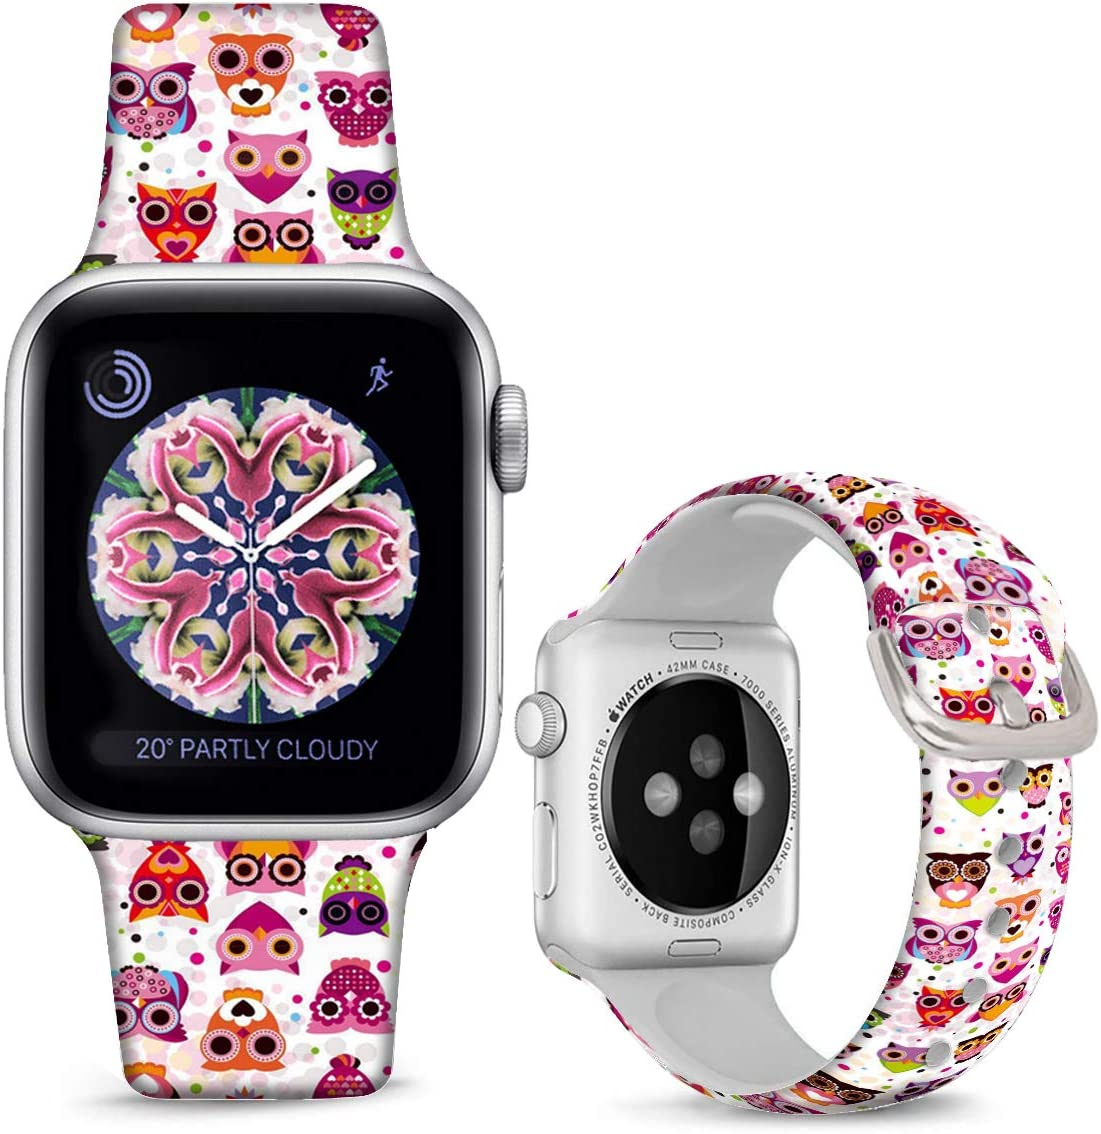 DOO UC Christmas Floral Silicone Watch Bands Compatible with Apple Watch 42mm/44mm for Women/Men ,Cute Cartoon Owl Silicone Fadeless Pattern Printed Replacement Strap for iWatch Series 6 5 4 3 2 1